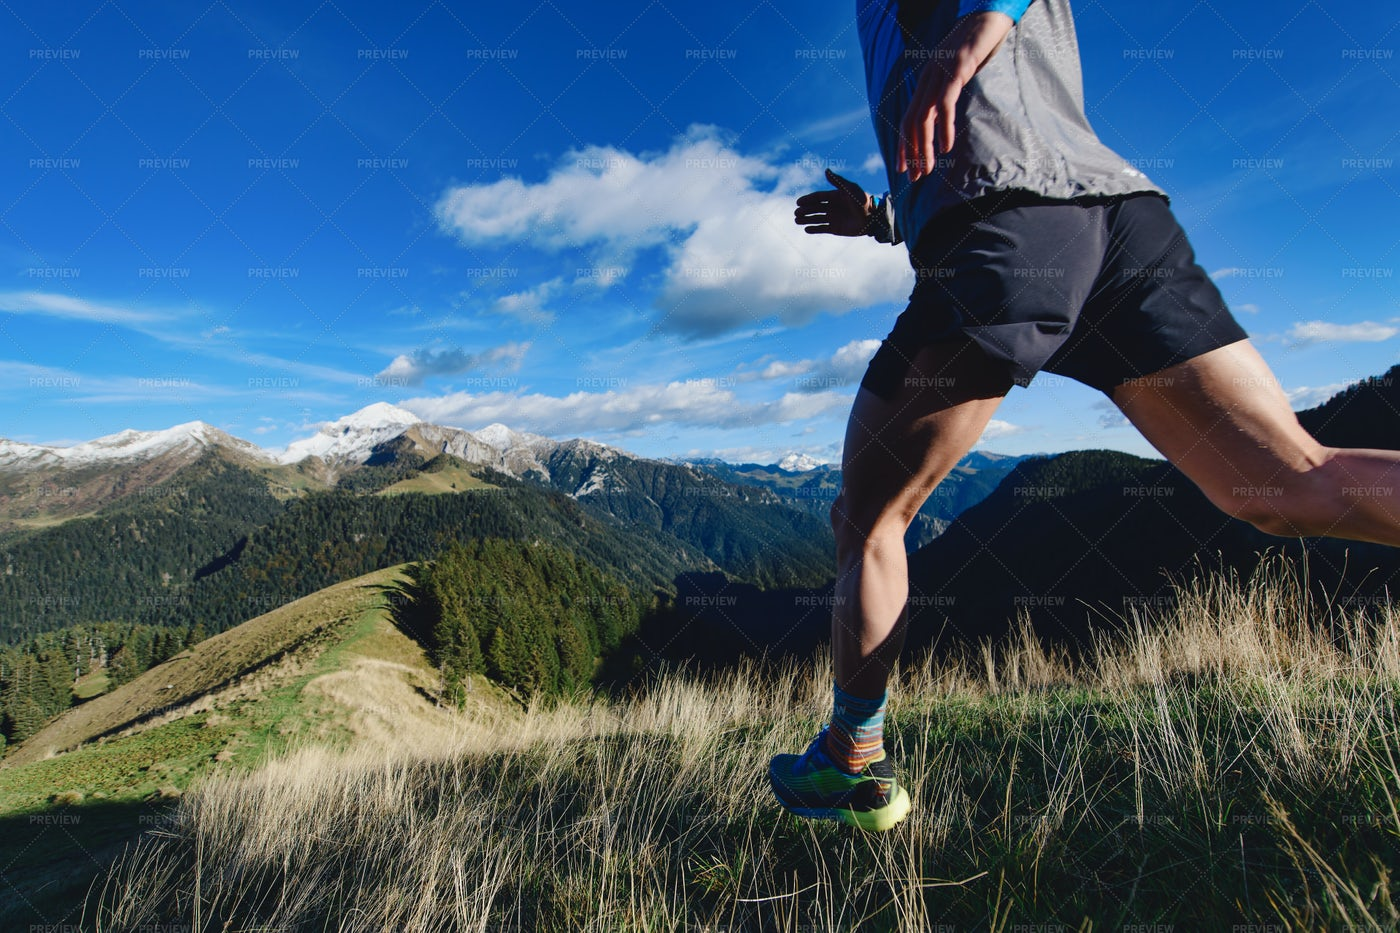 Runner During Downhill Workout: Stock Photos